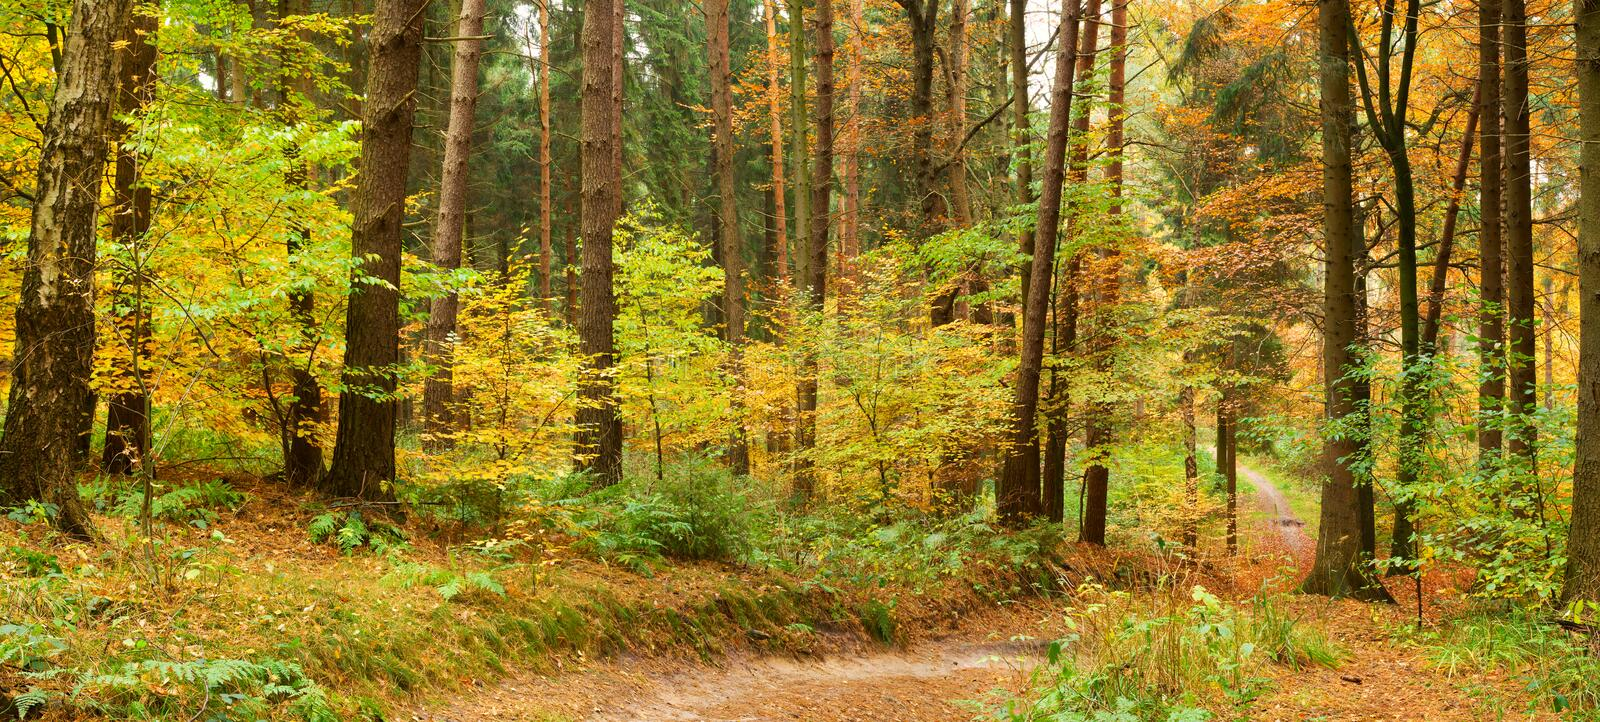 Download Path In Mixed Autumn Forest Stock Photo - Image: 16814528